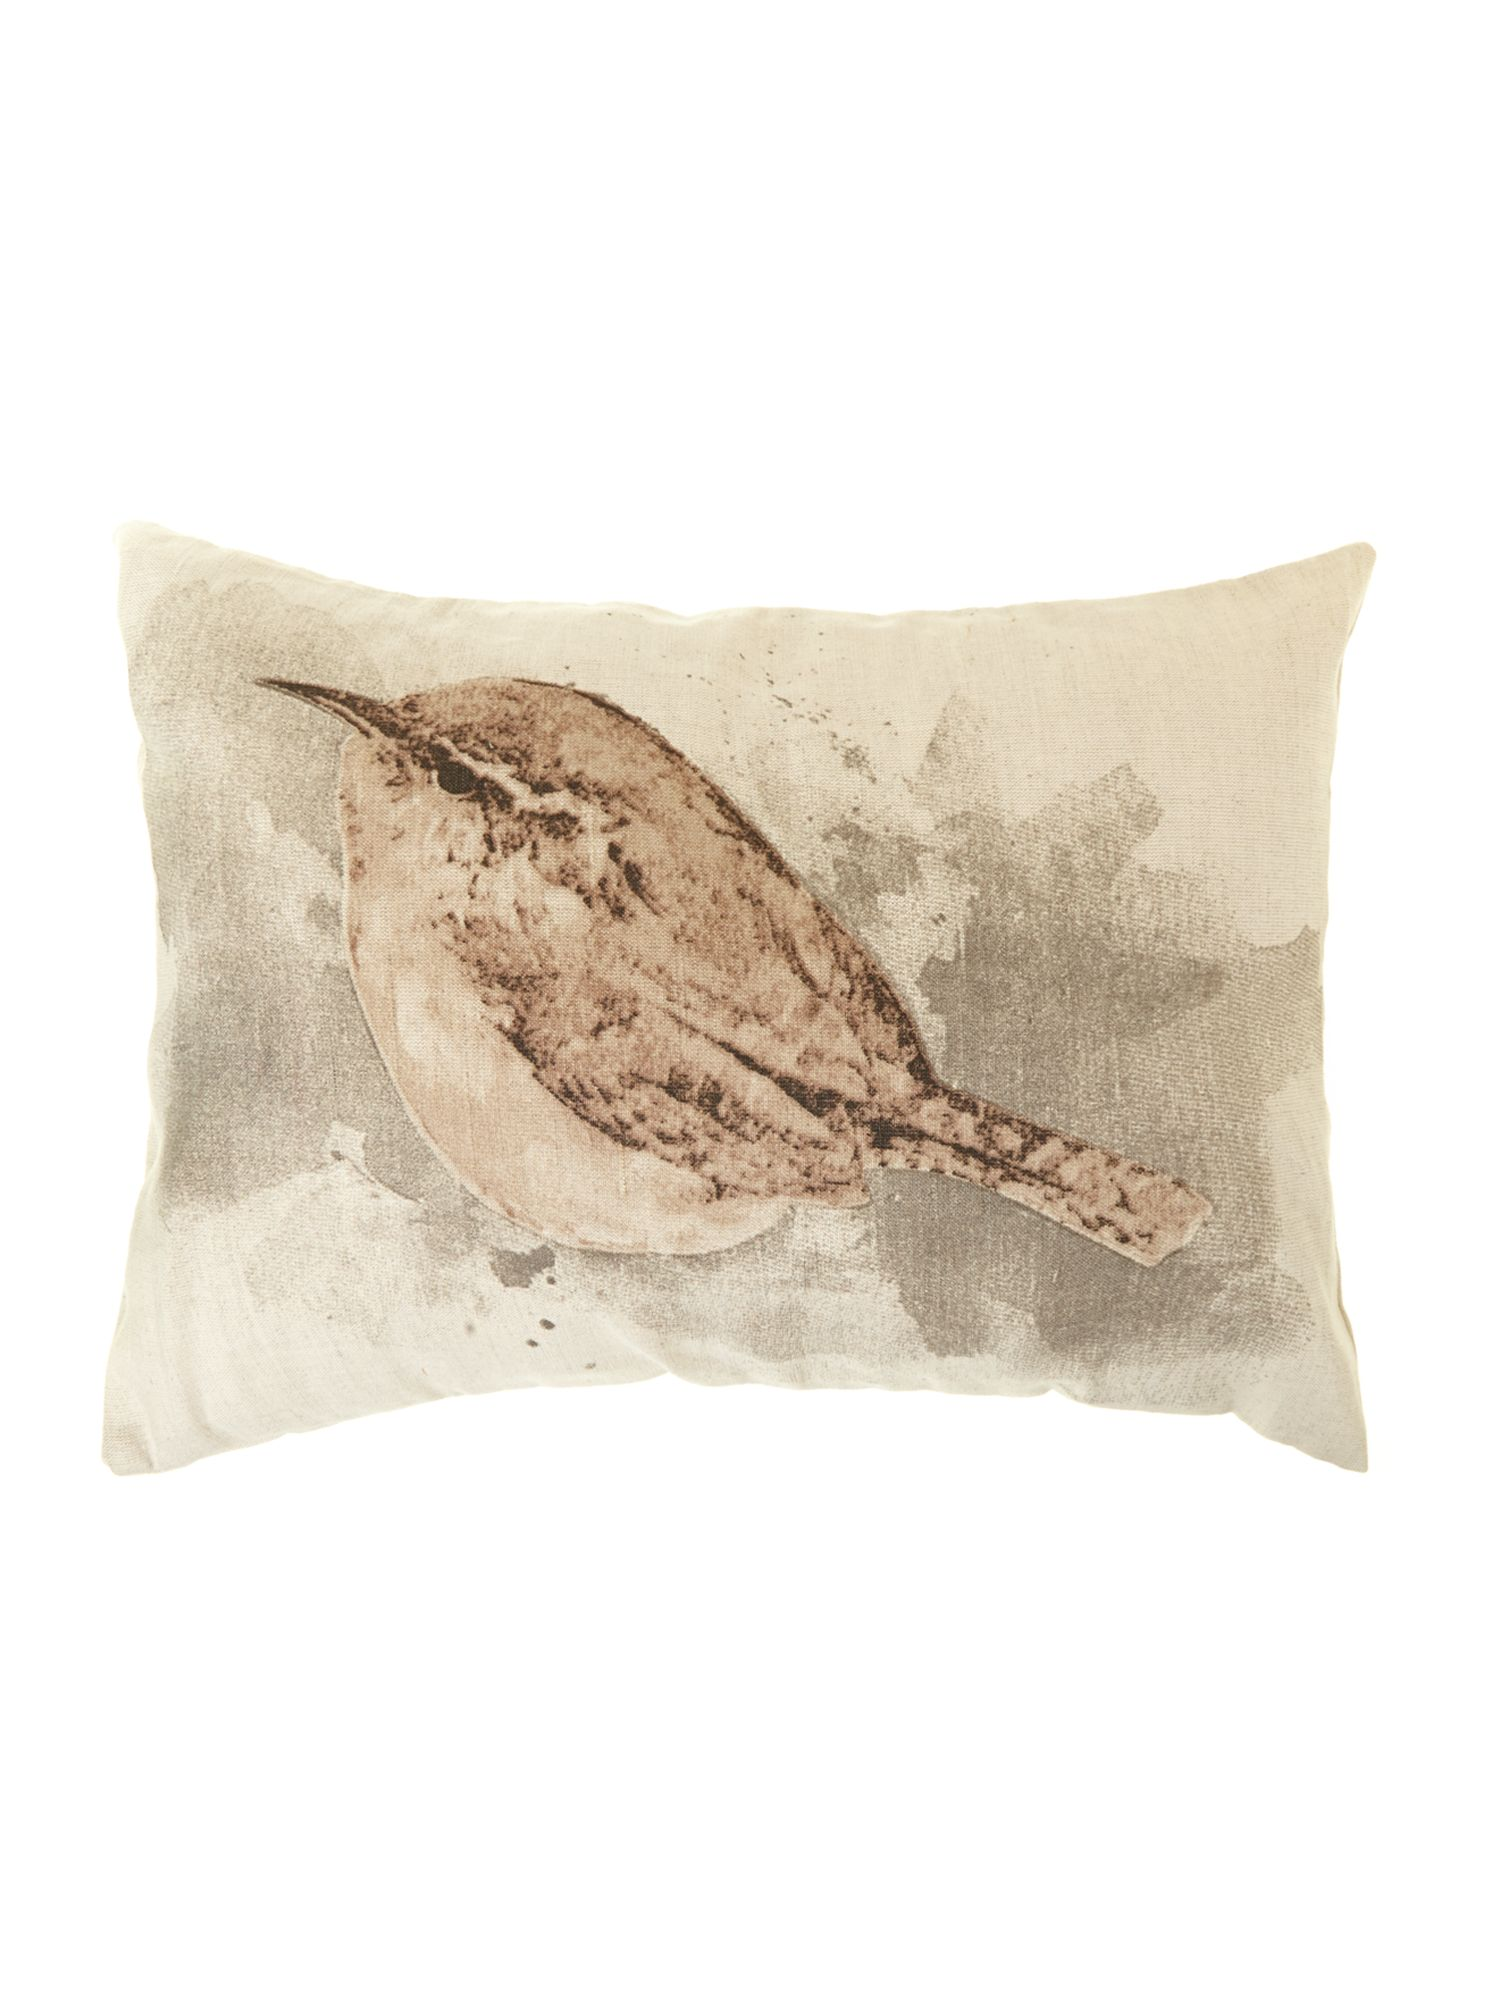 Printed sparrow cushion